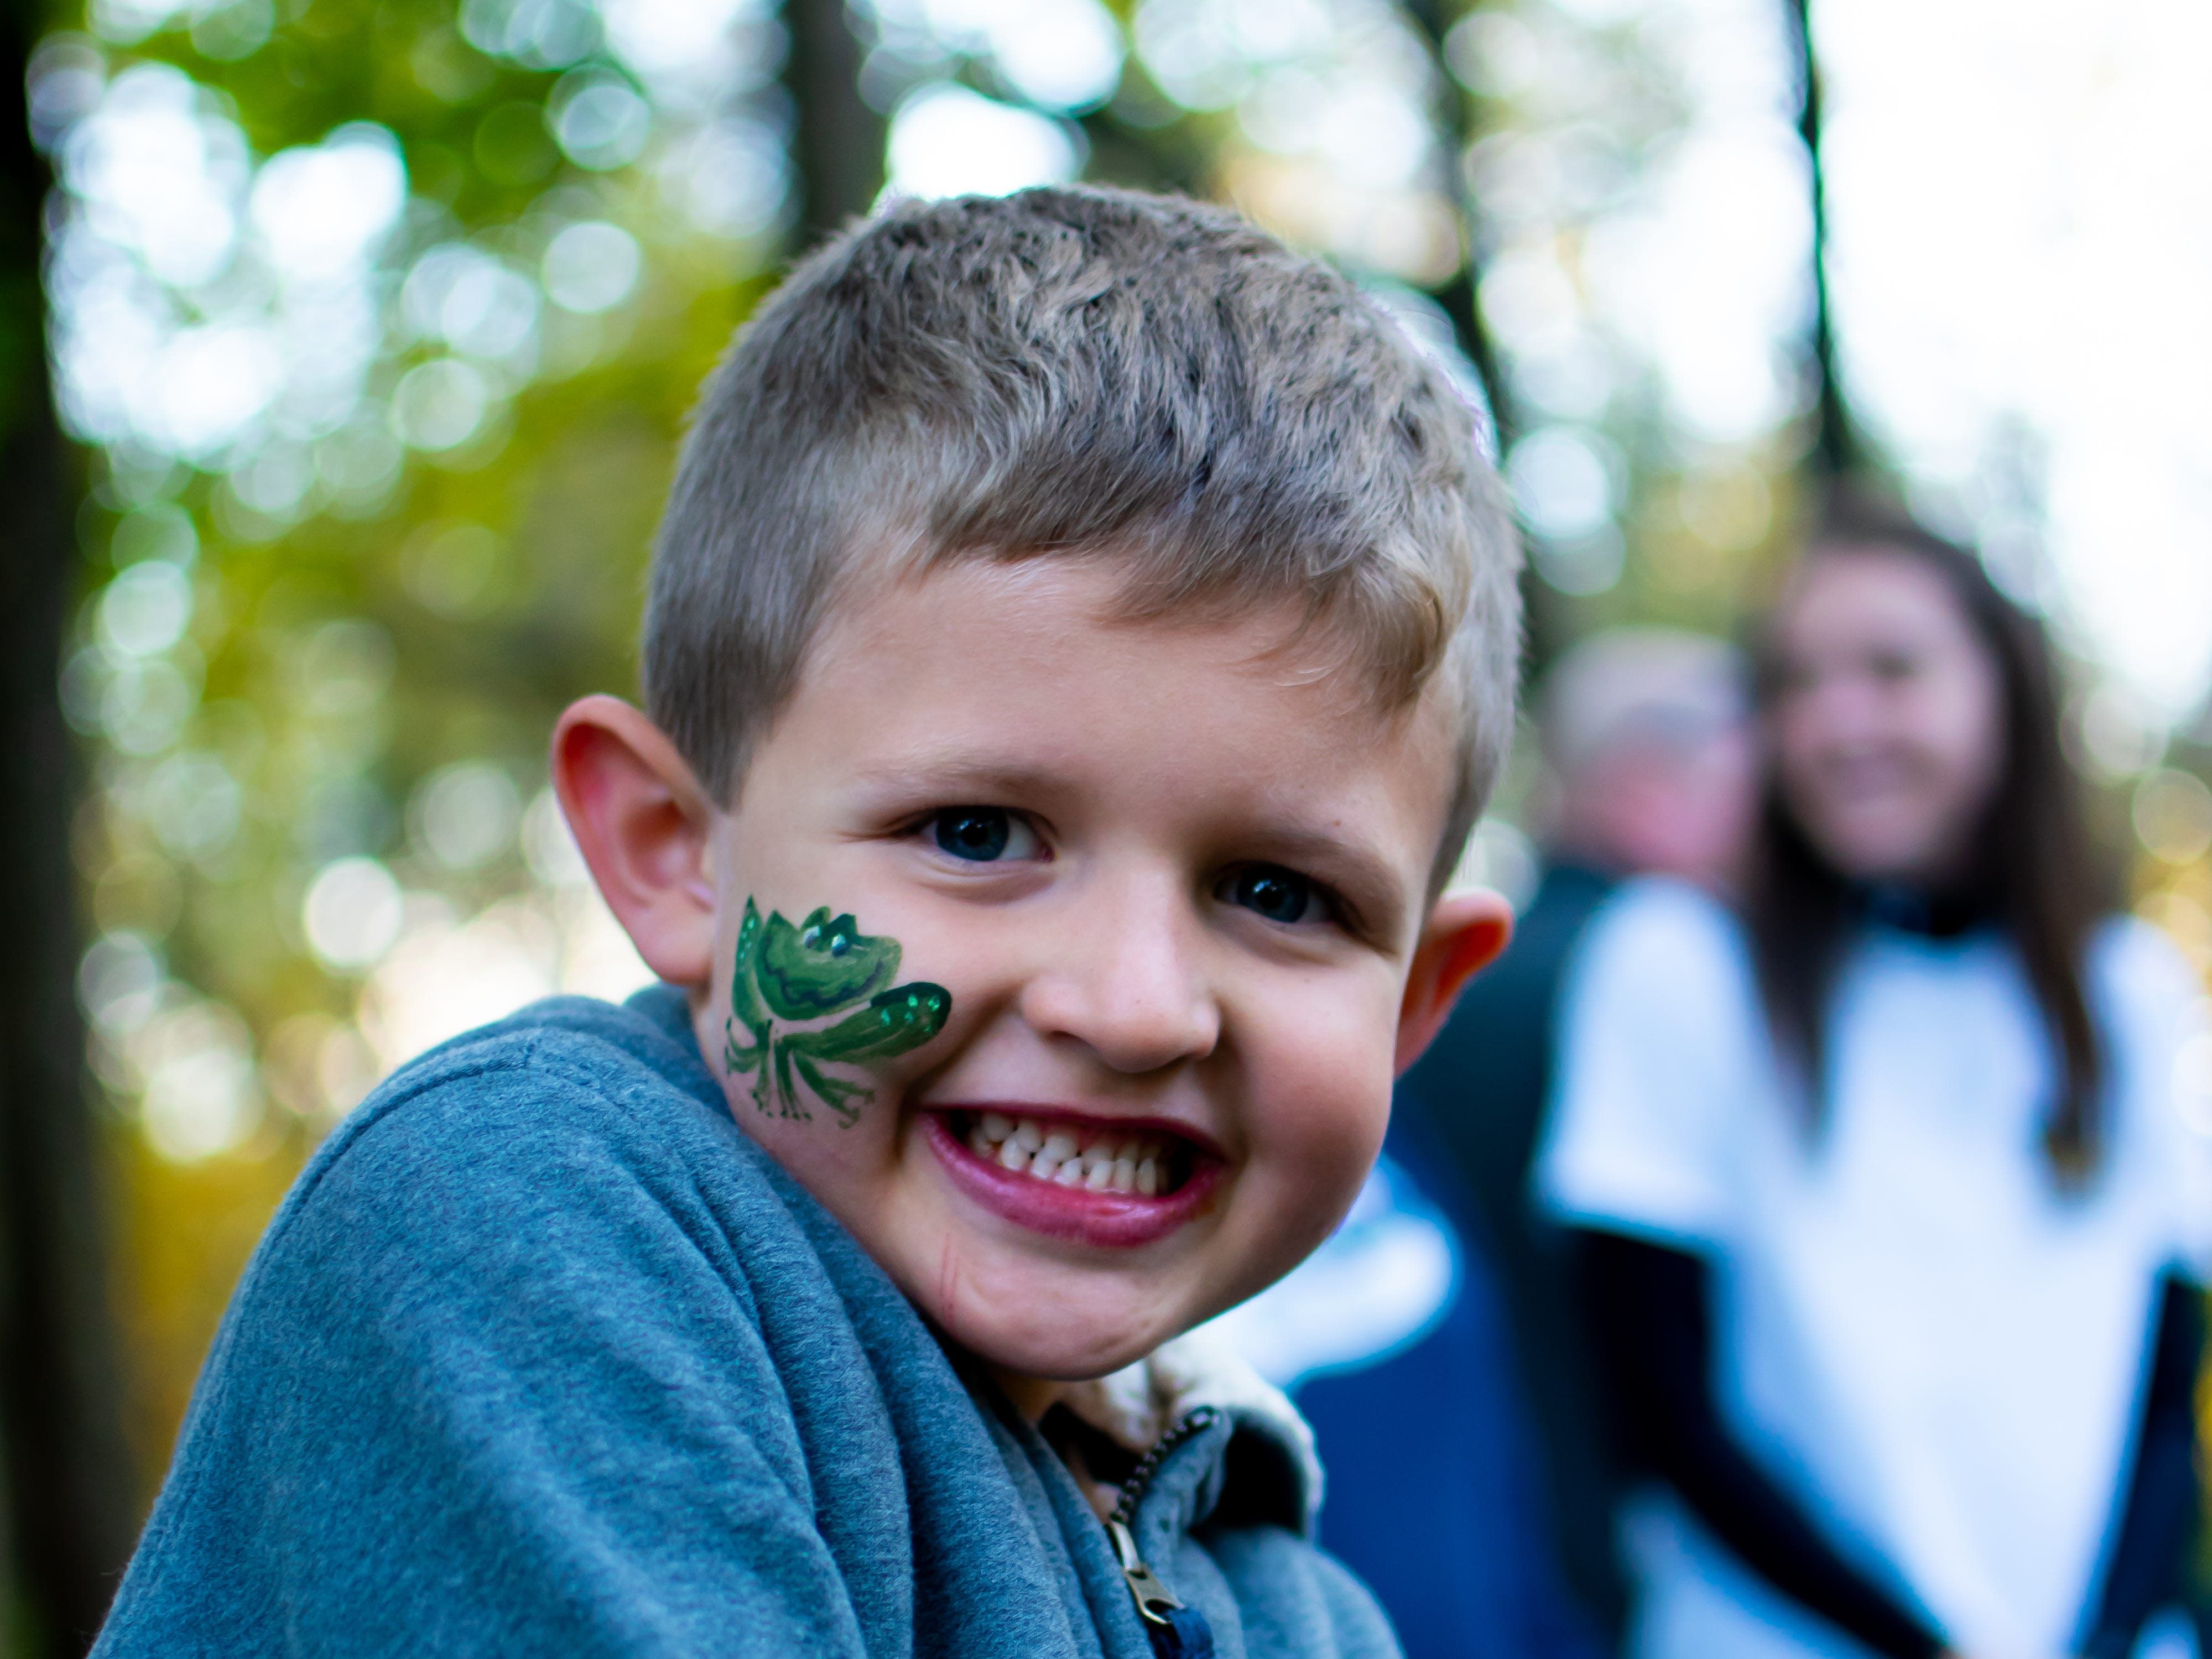 Grant Boaz, 6, of Waukee shows of the frog he received from a face painting session on Tuesday, Oct. 16, 2018 for the Waukee Area Chamber of Commerce fall after hours party at Timberline Campground in Waukee.